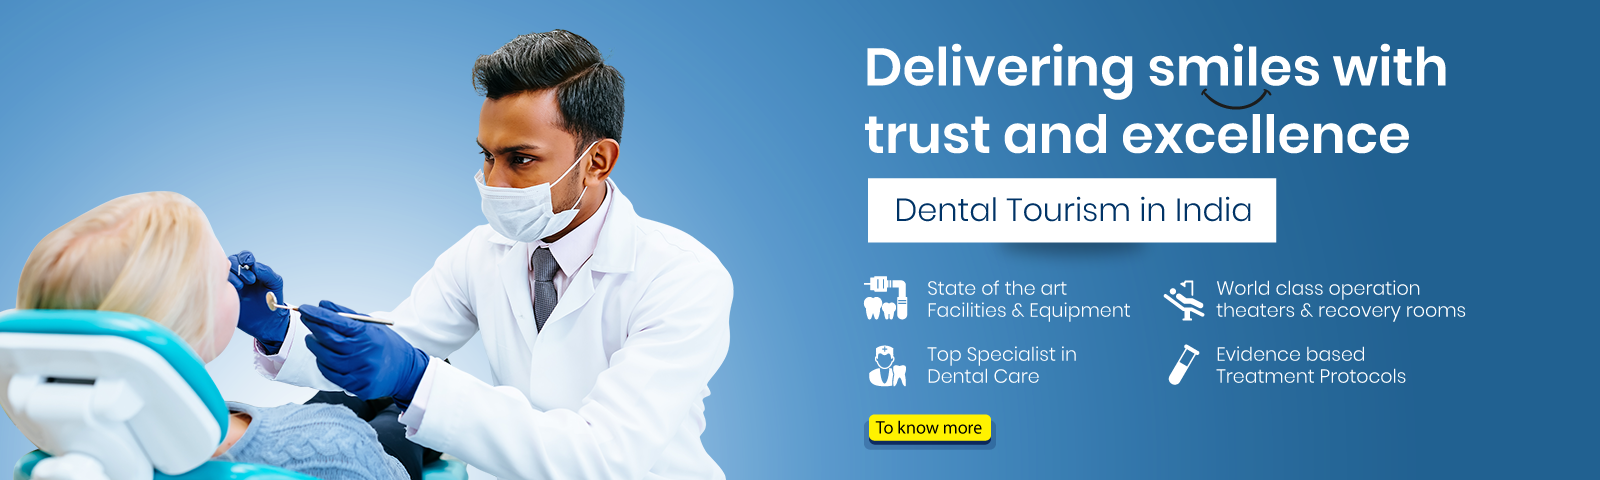 Dental-Treatment-Apollo-White-Dental